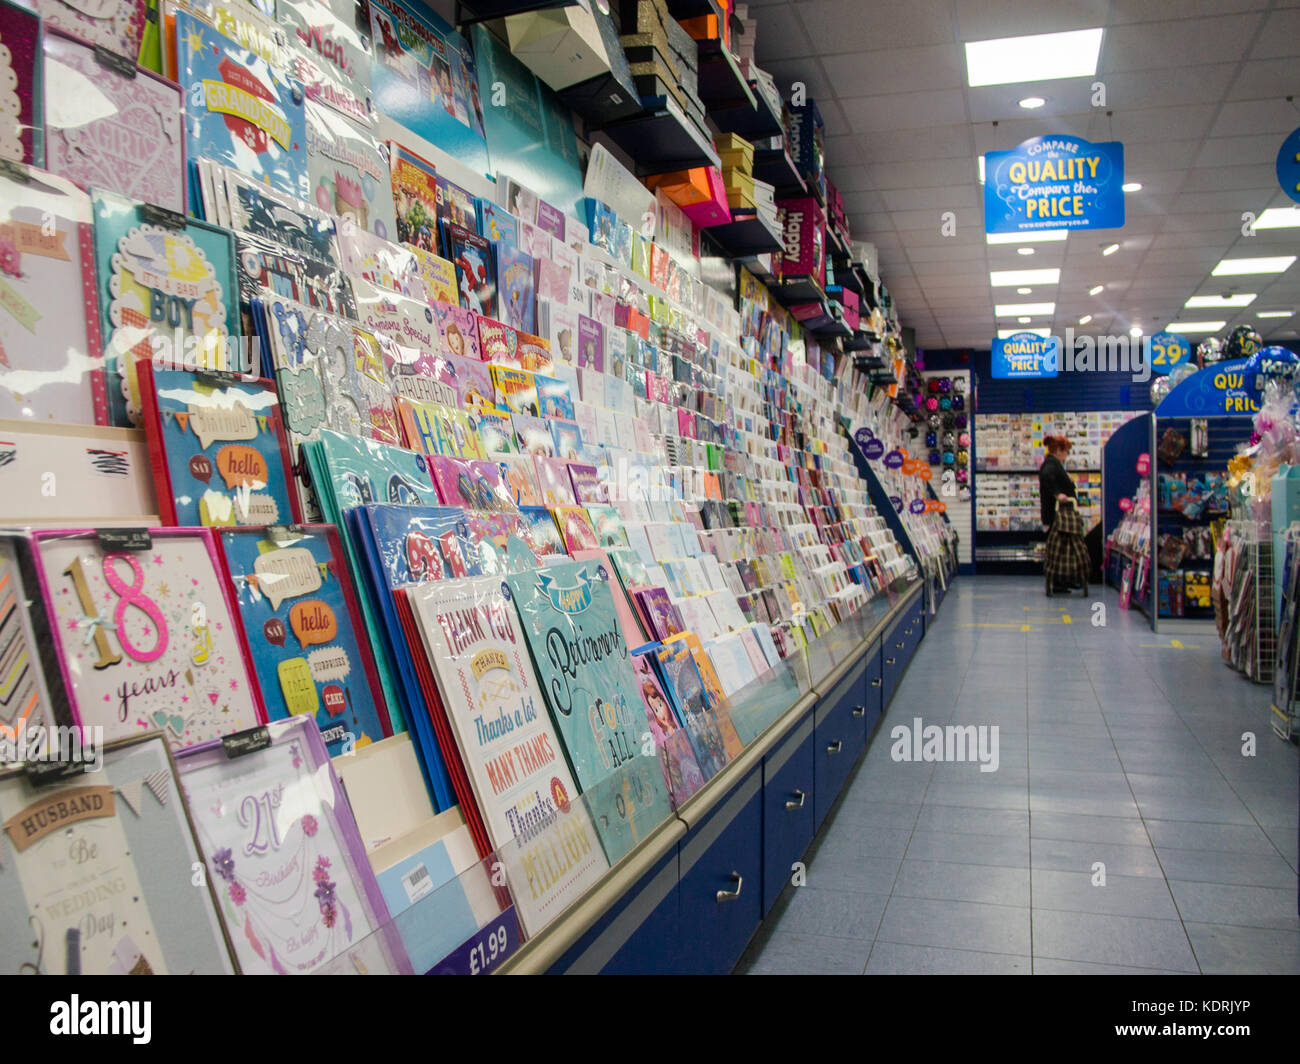 Greetings Cards And Shelving In A Greeting Card Store